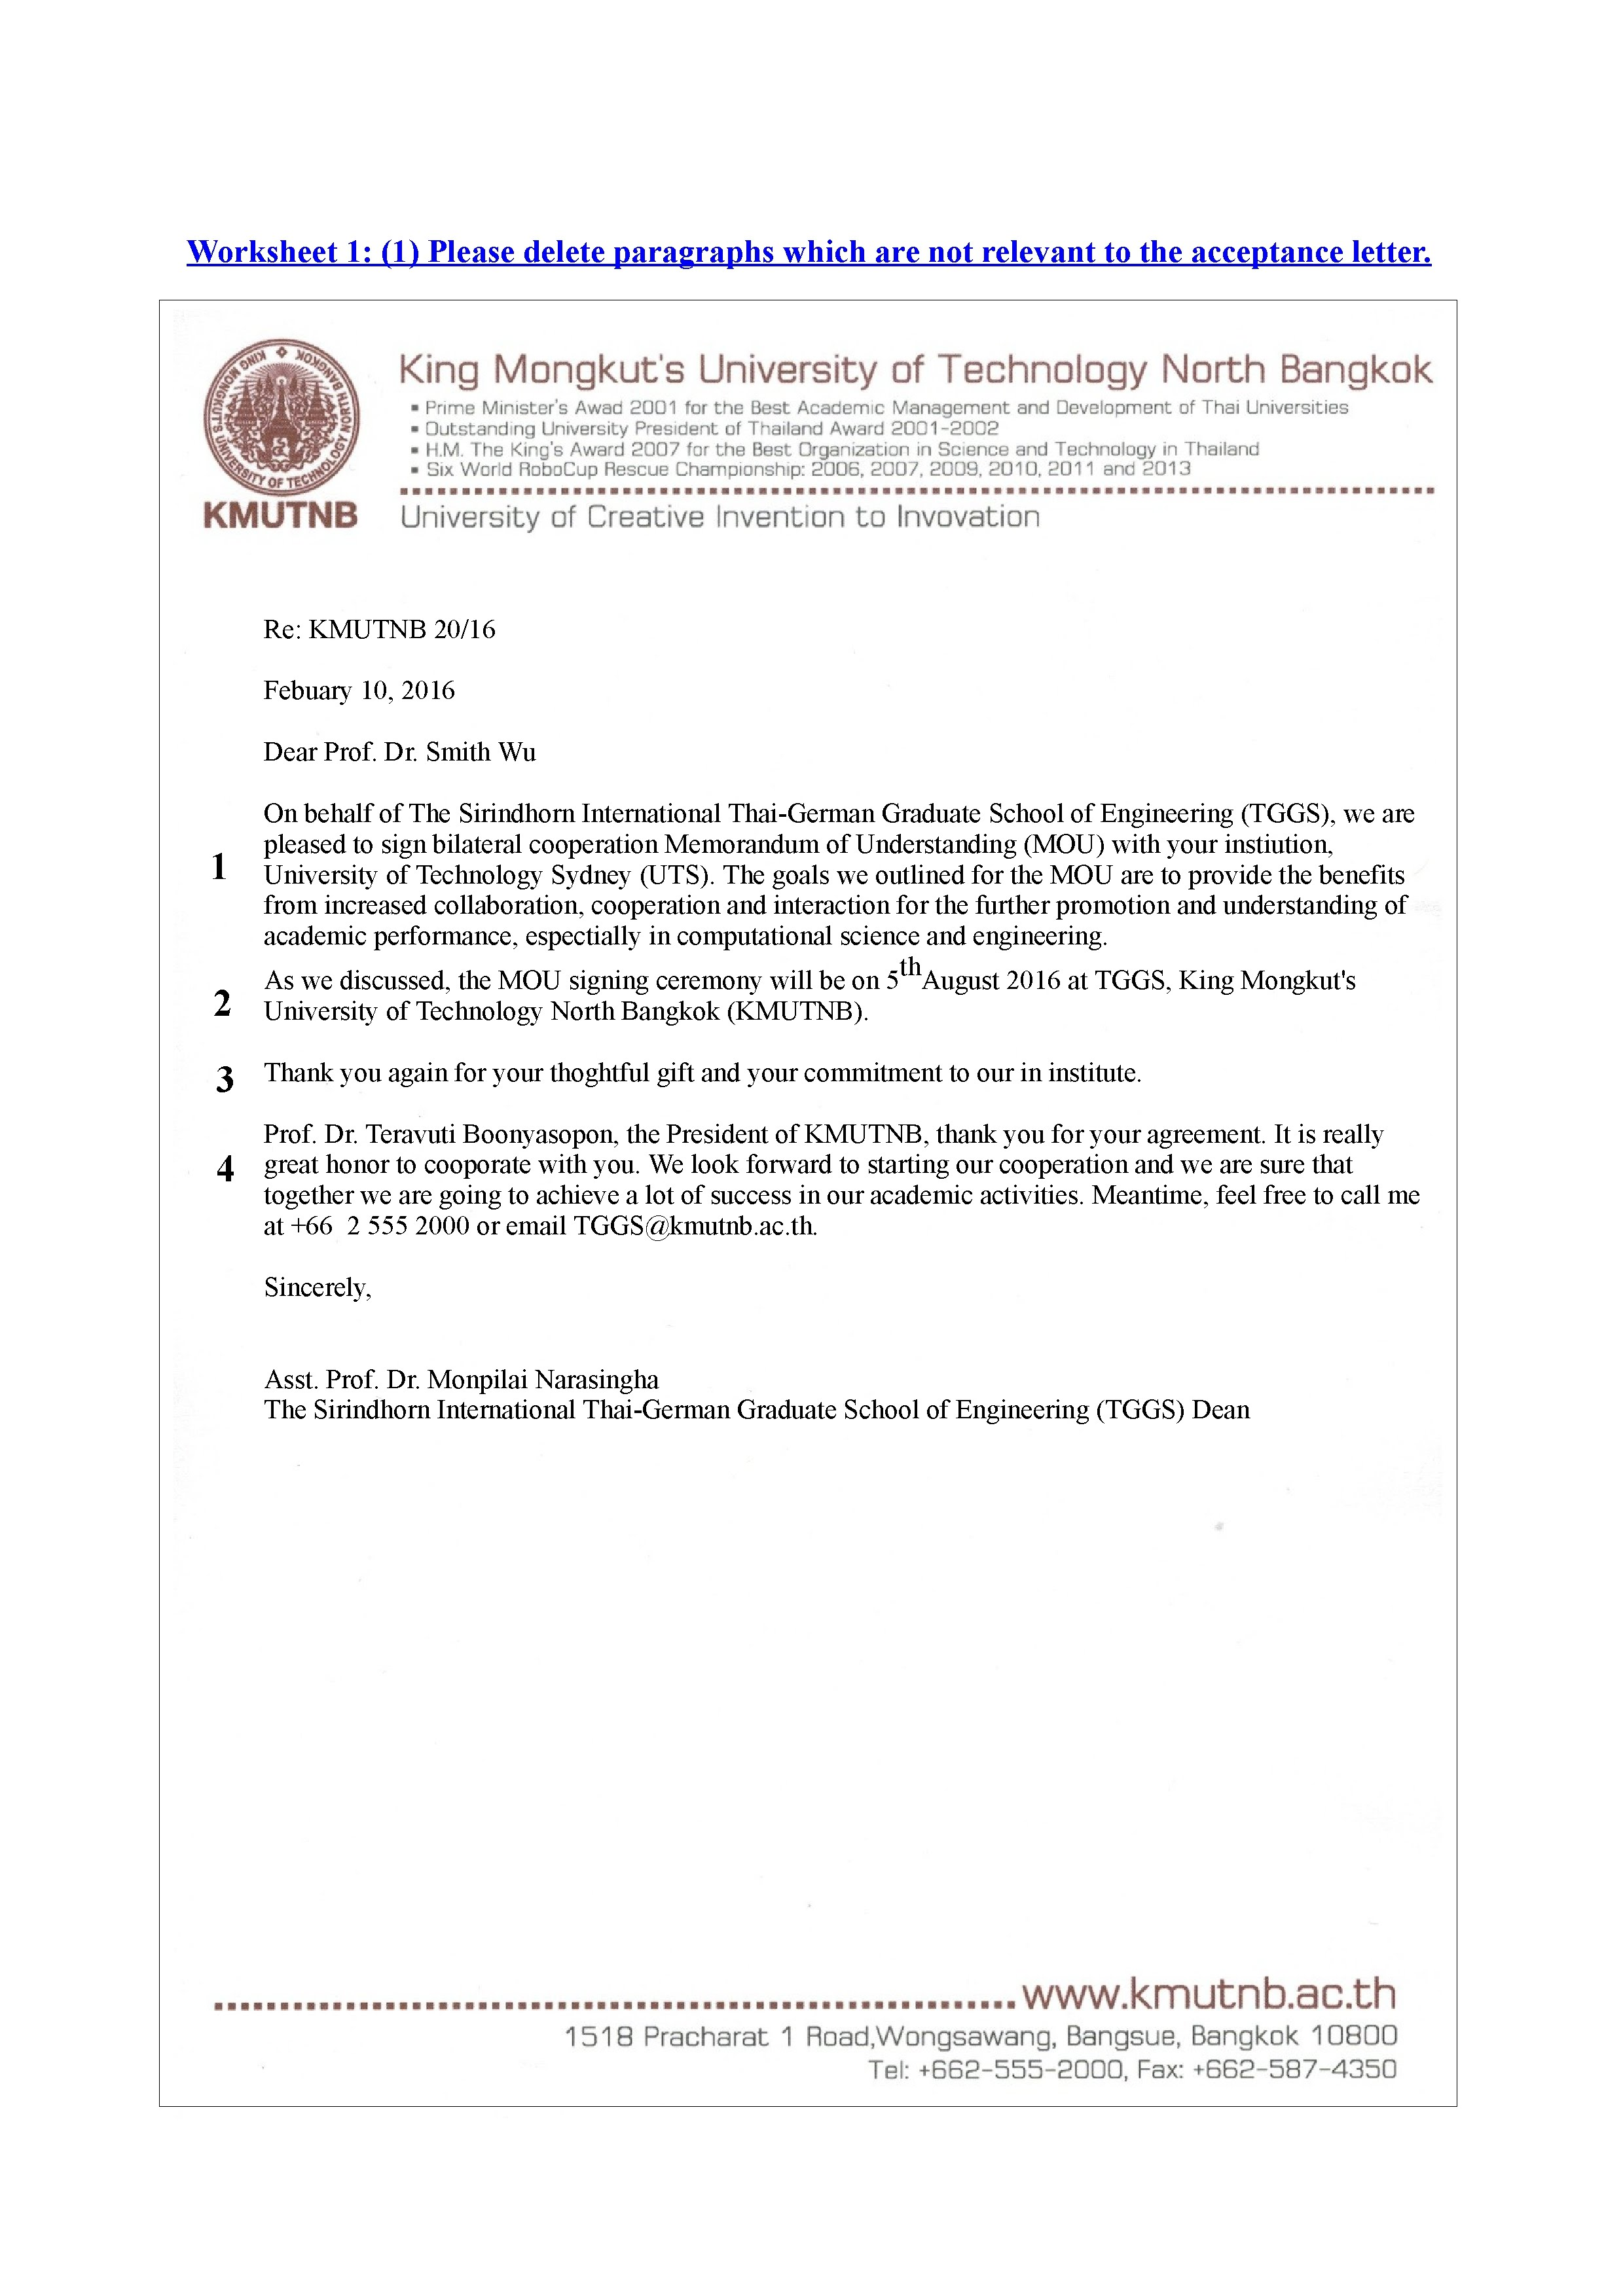 Worksheet 1 Acceptance Letter And Refusal Letter